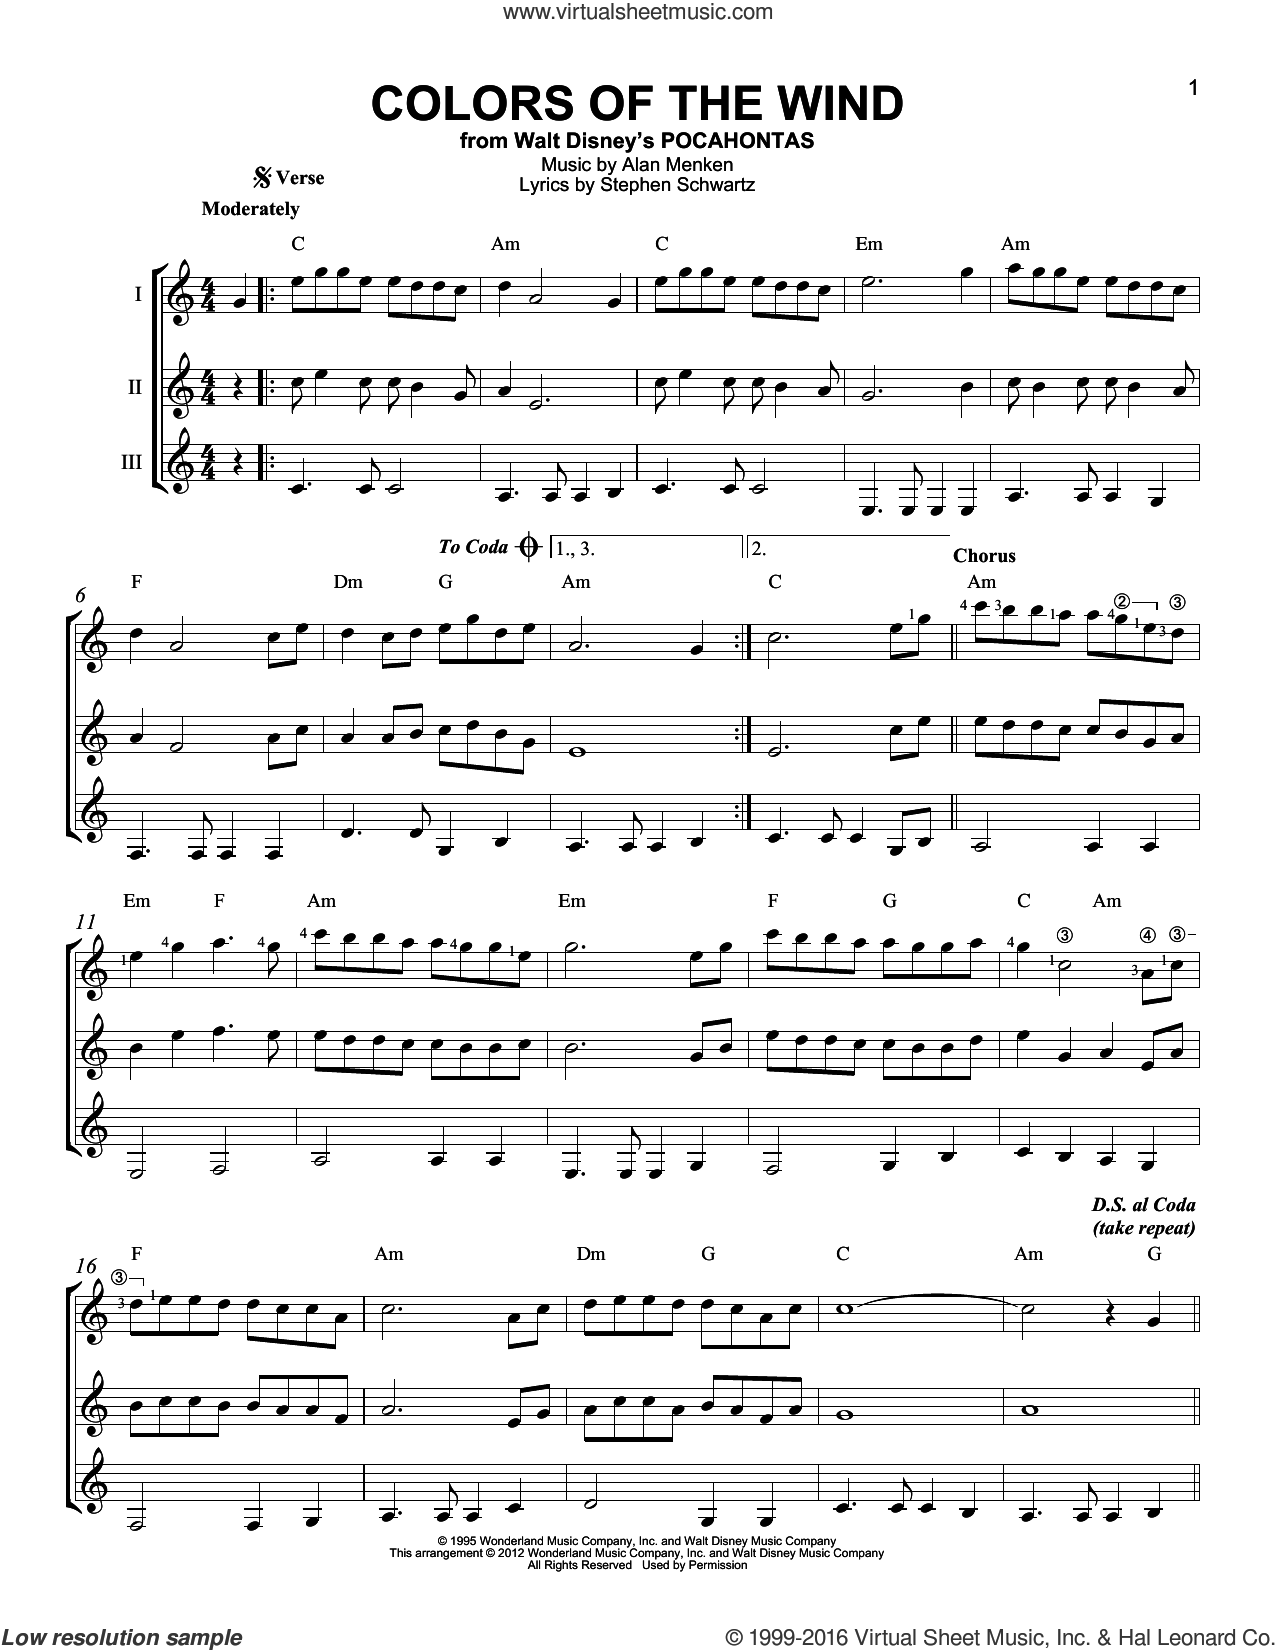 Colors Of The Wind sheet music for guitar ensemble by Alan Menken, Stephen Schwartz and Vanessa Williams. Score Image Preview.